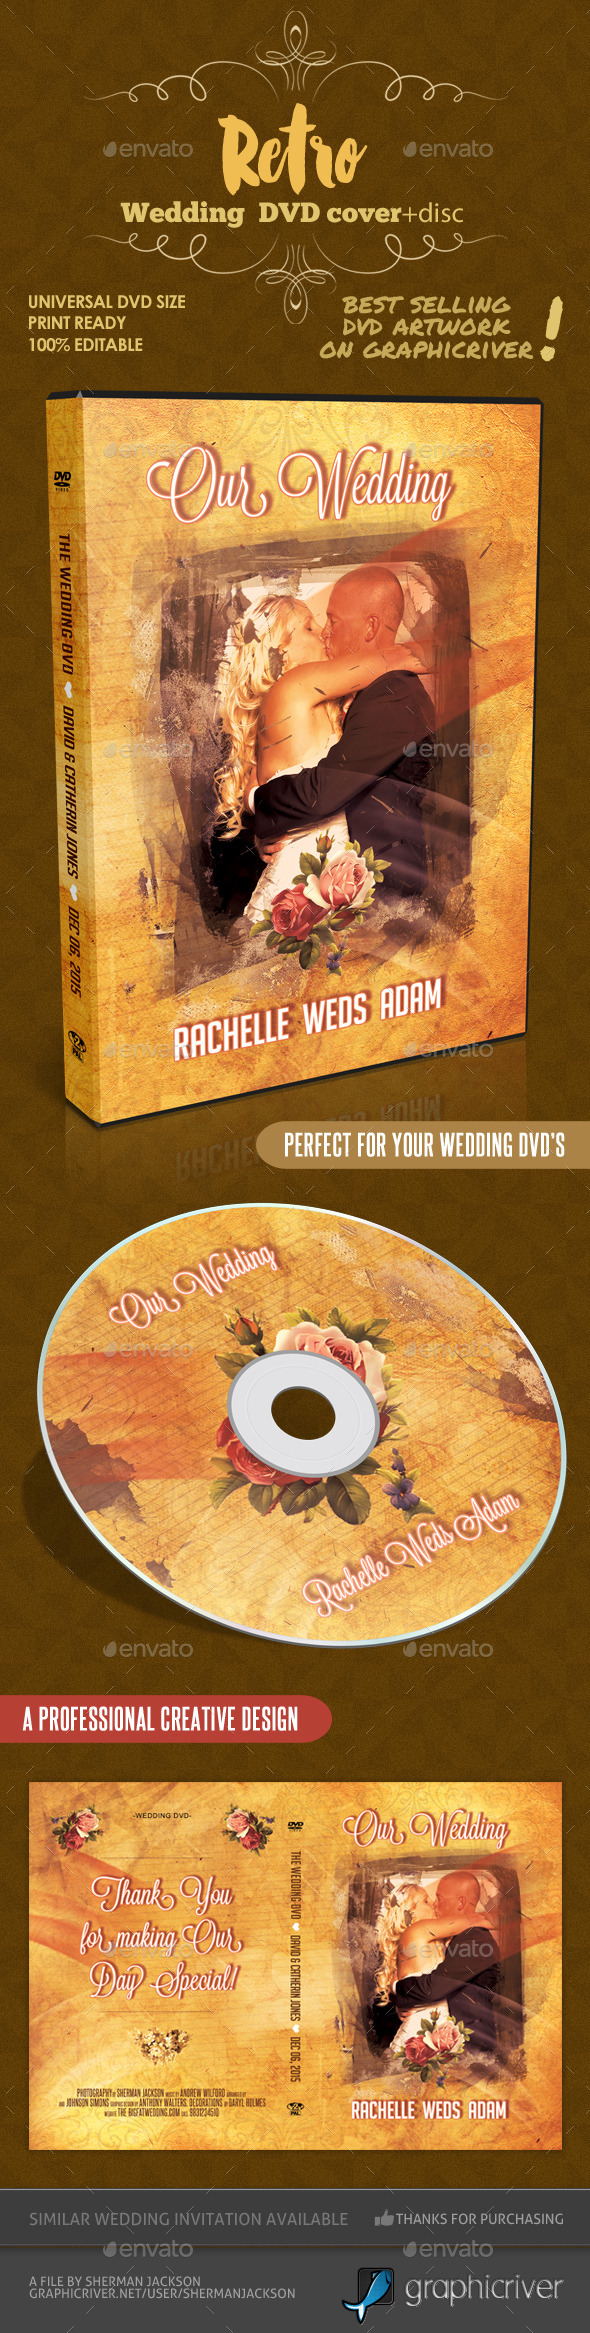 Retro Wedding DVD Cover Template & Disc Artwork - CD & DVD Artwork Print Templates